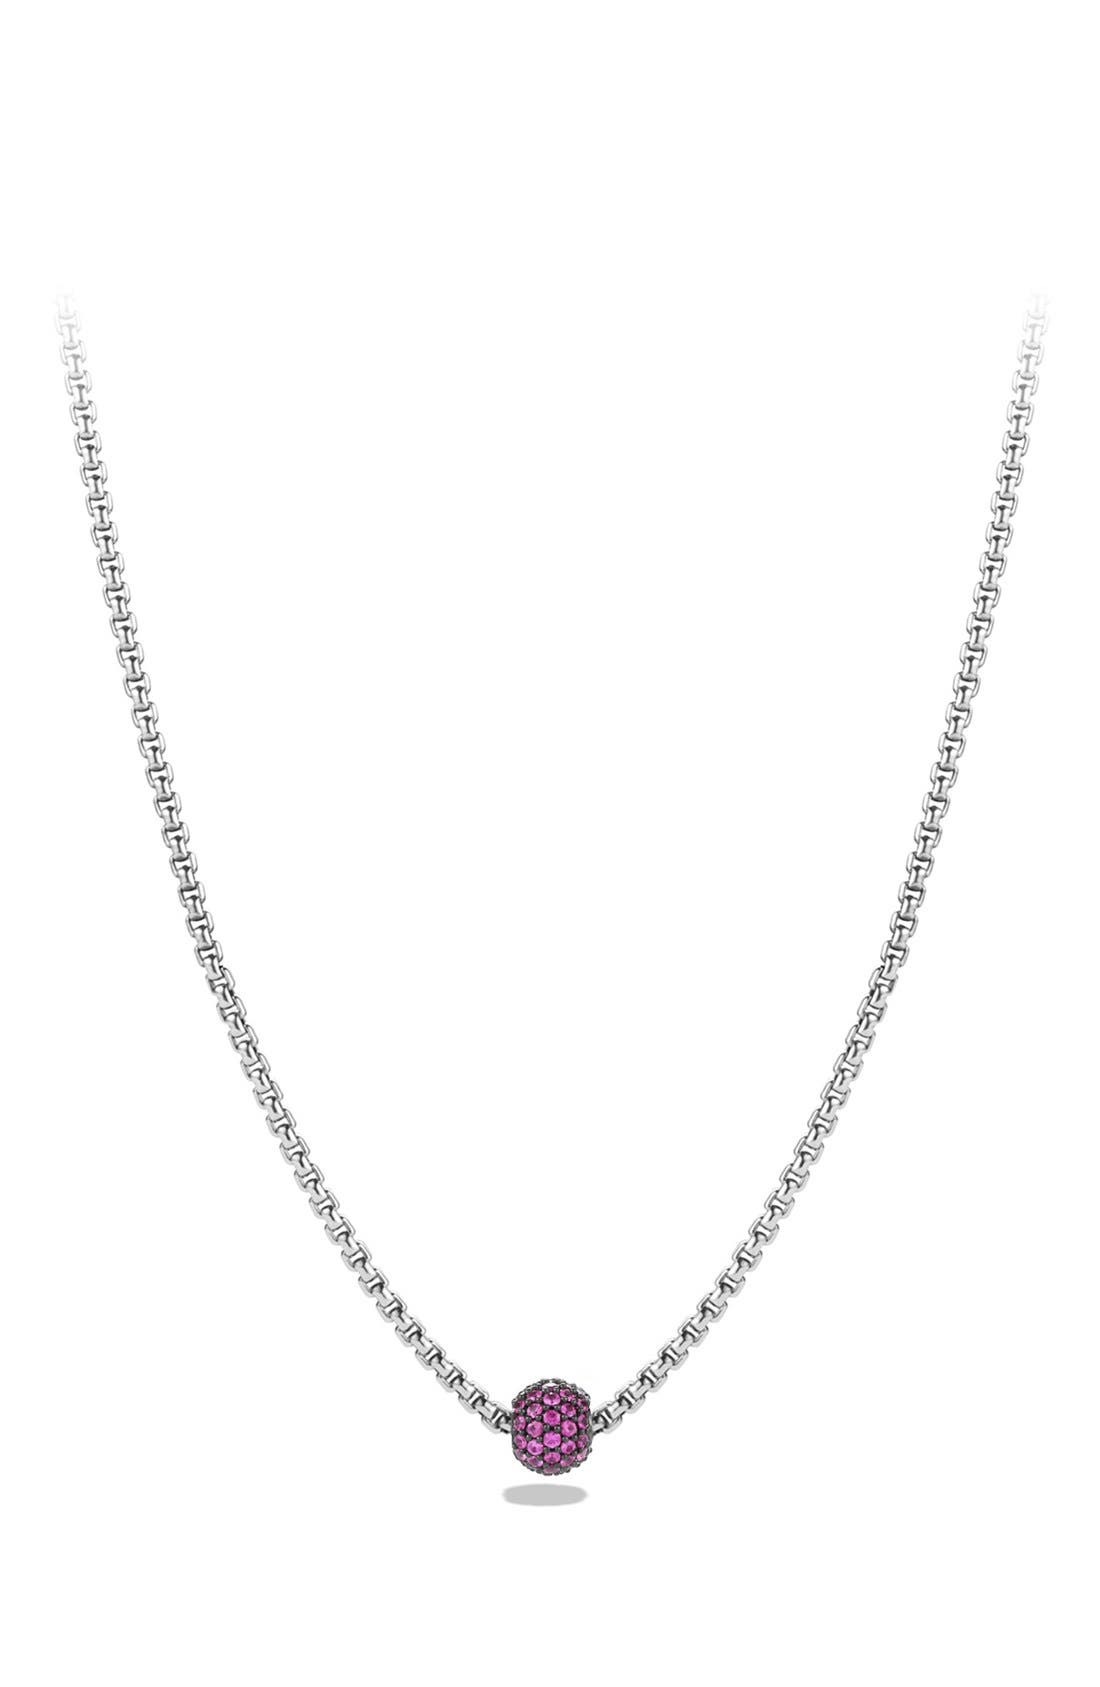 David Yurman 'Metro' Petite Pavé Chain Necklace with Sapphires